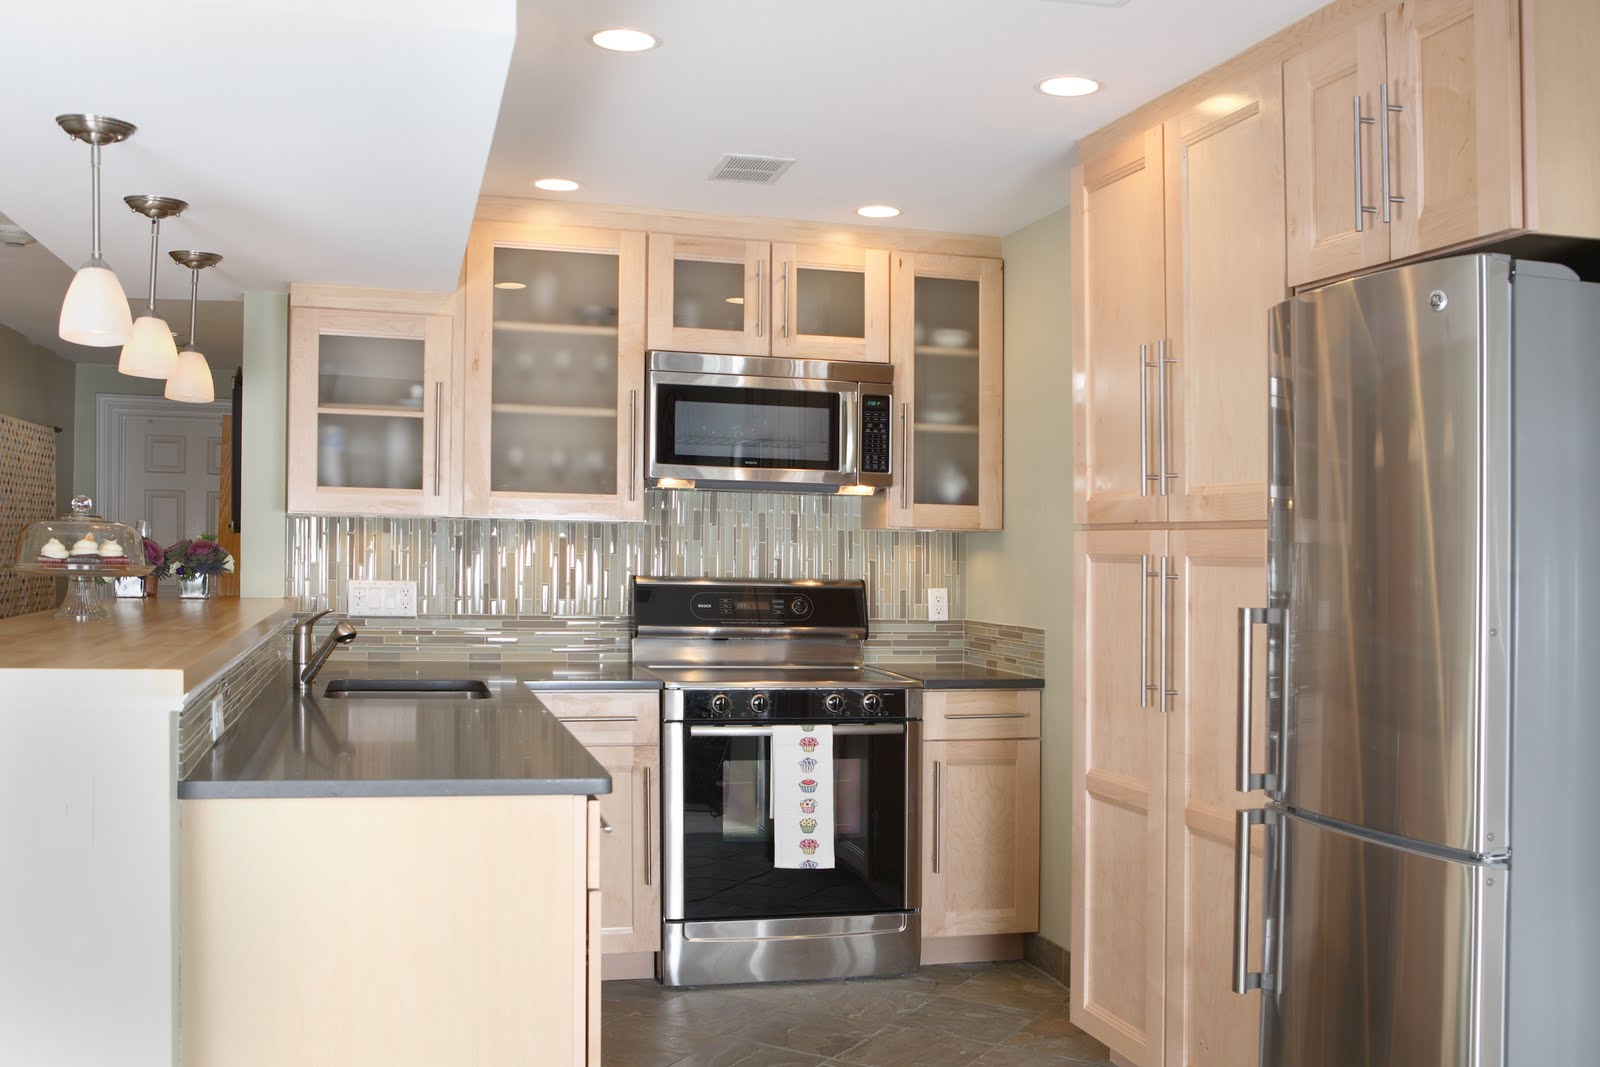 Lee County-Fort Myers Home Remodeling Team-We do kitchen & bath remodeling, home renovations, custom lighting, custom cabinet installation, cabinet refacing and refinishing, outdoor kitchens, commercial kitchen, countertops and more